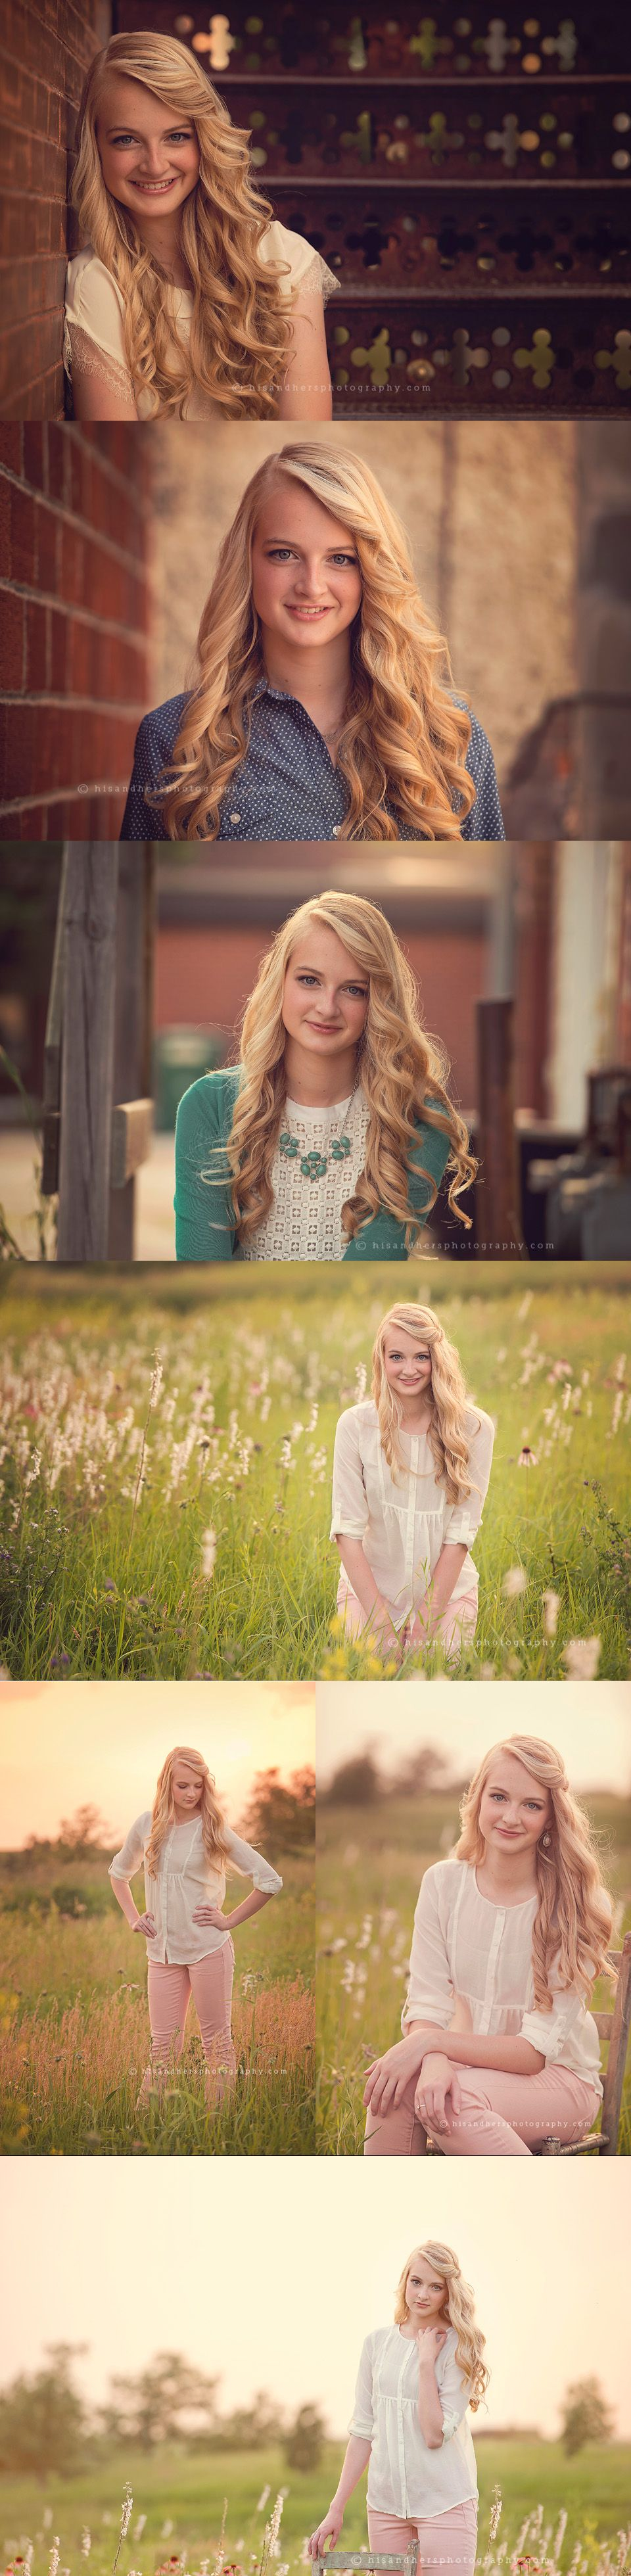 des moines iowa photographer senior pictures senior portraits graduation yearbook